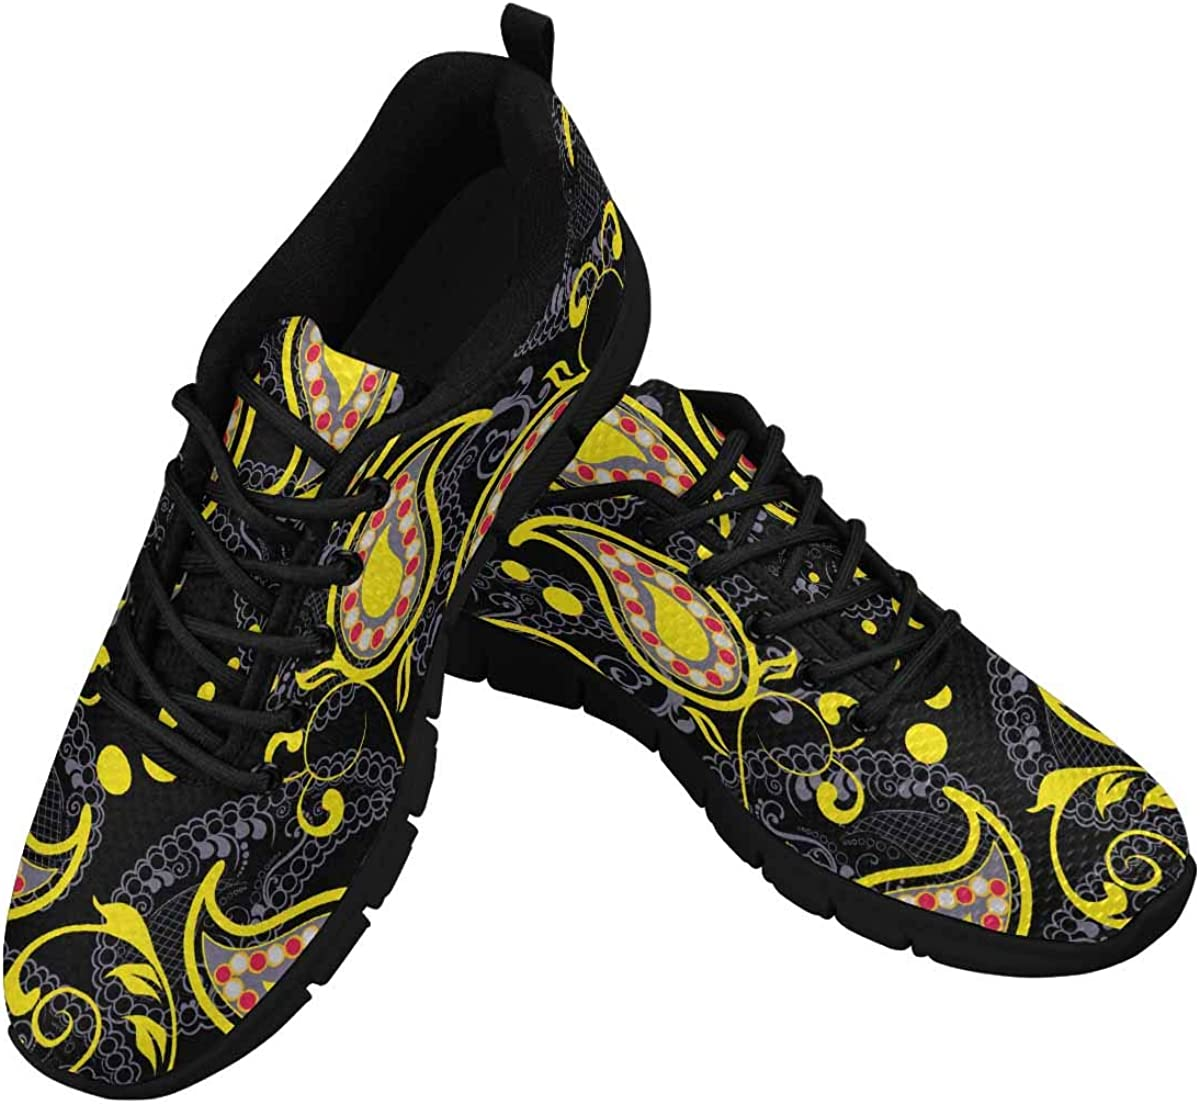 InterestPrint Yellow Floral Pattern Women's Athletic Walking Running Sneakers Comfortable Lightweight Shoes